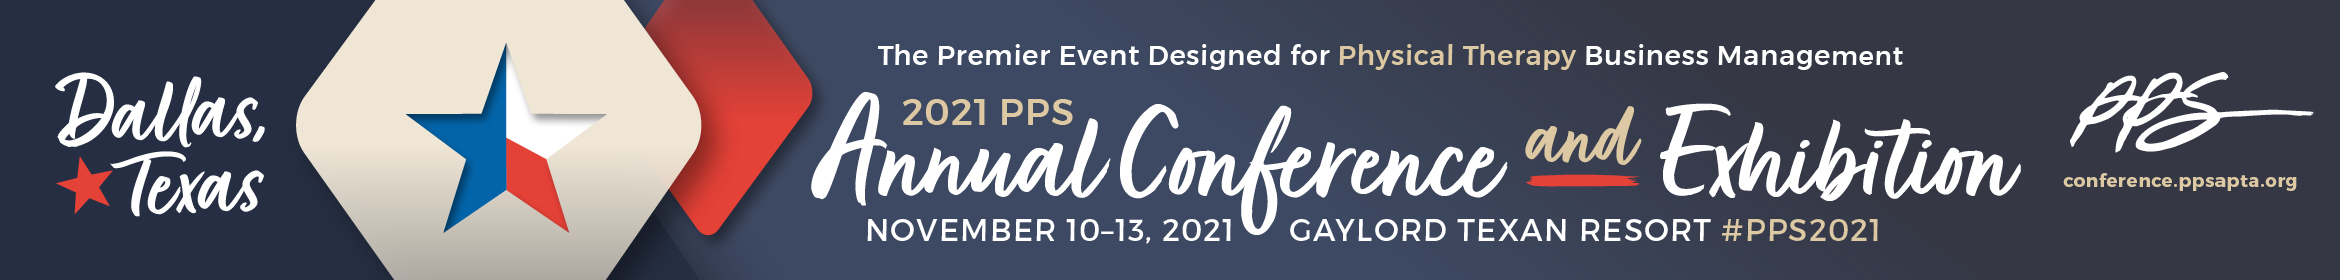 PPS Annual Conference 2021 Main banner